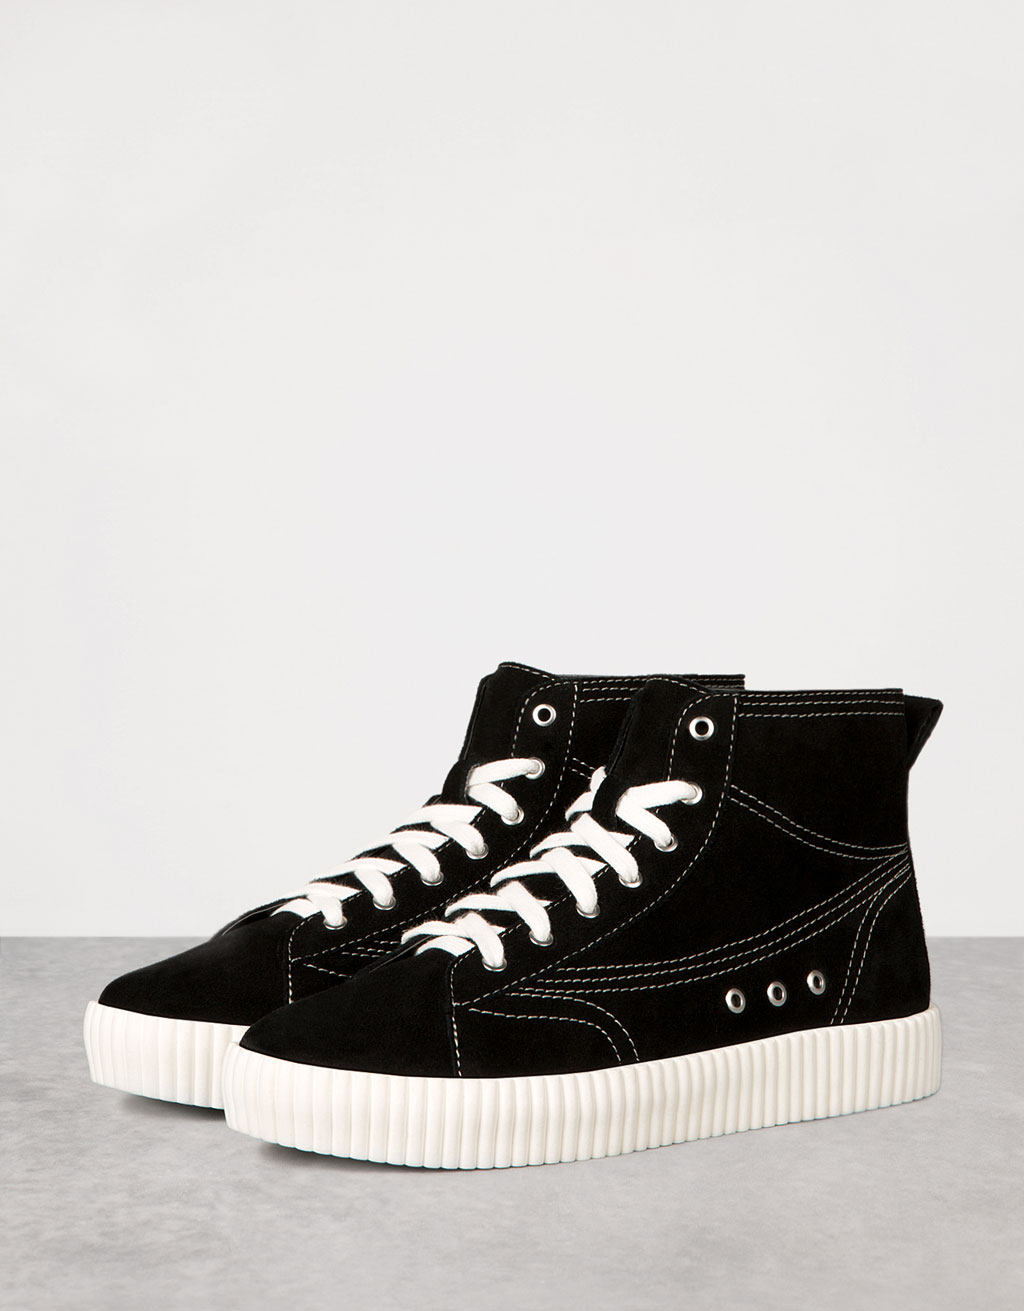 LEATHER platform high tops